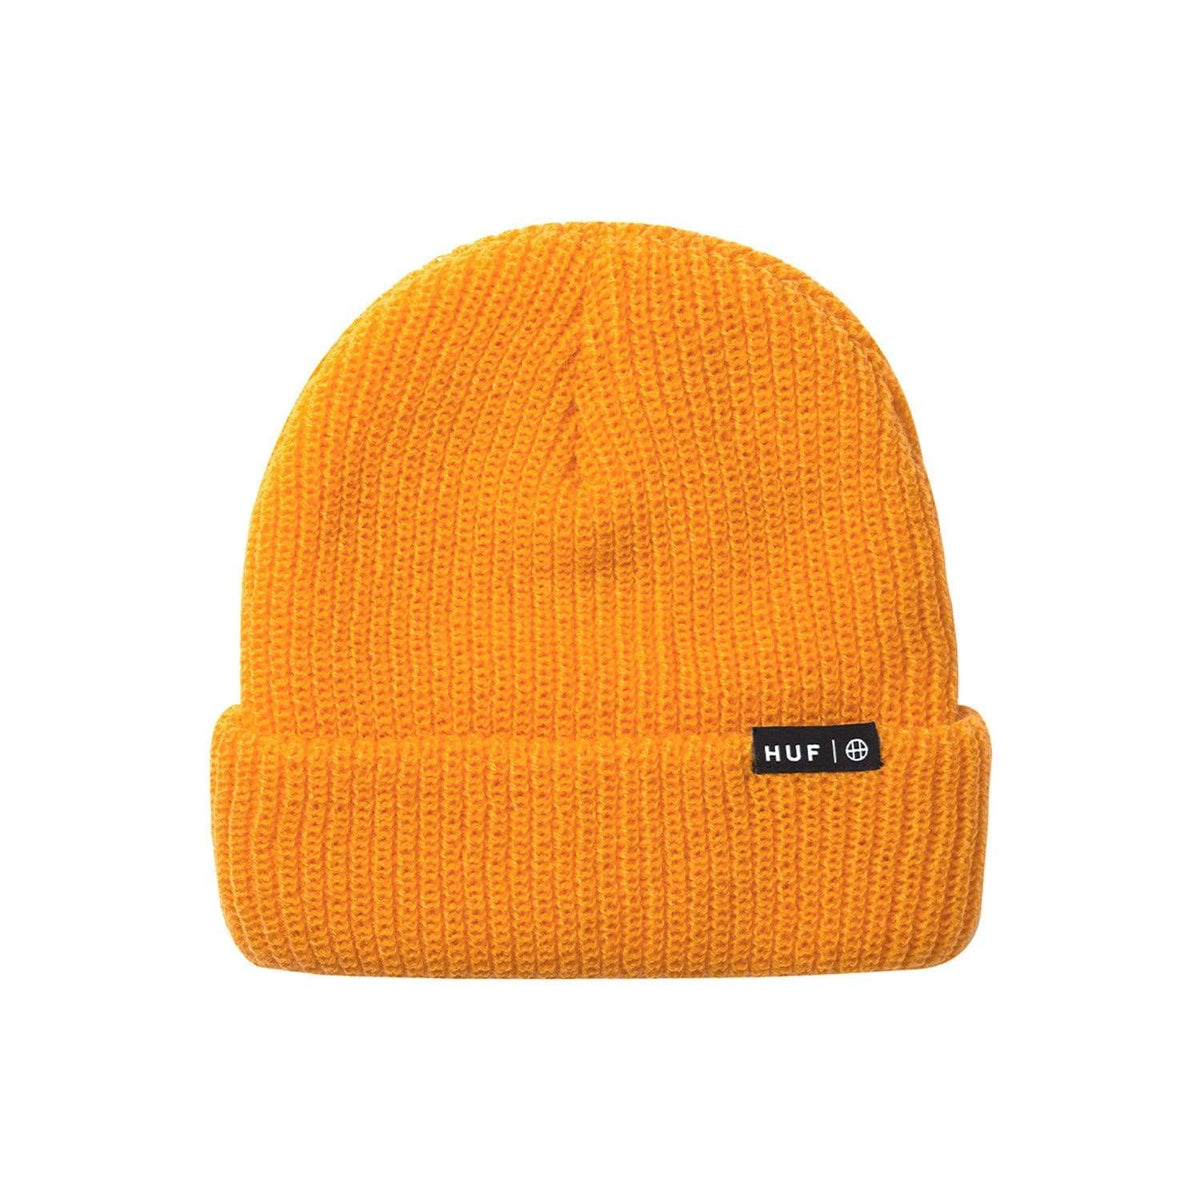 huf cappelli,, image 1